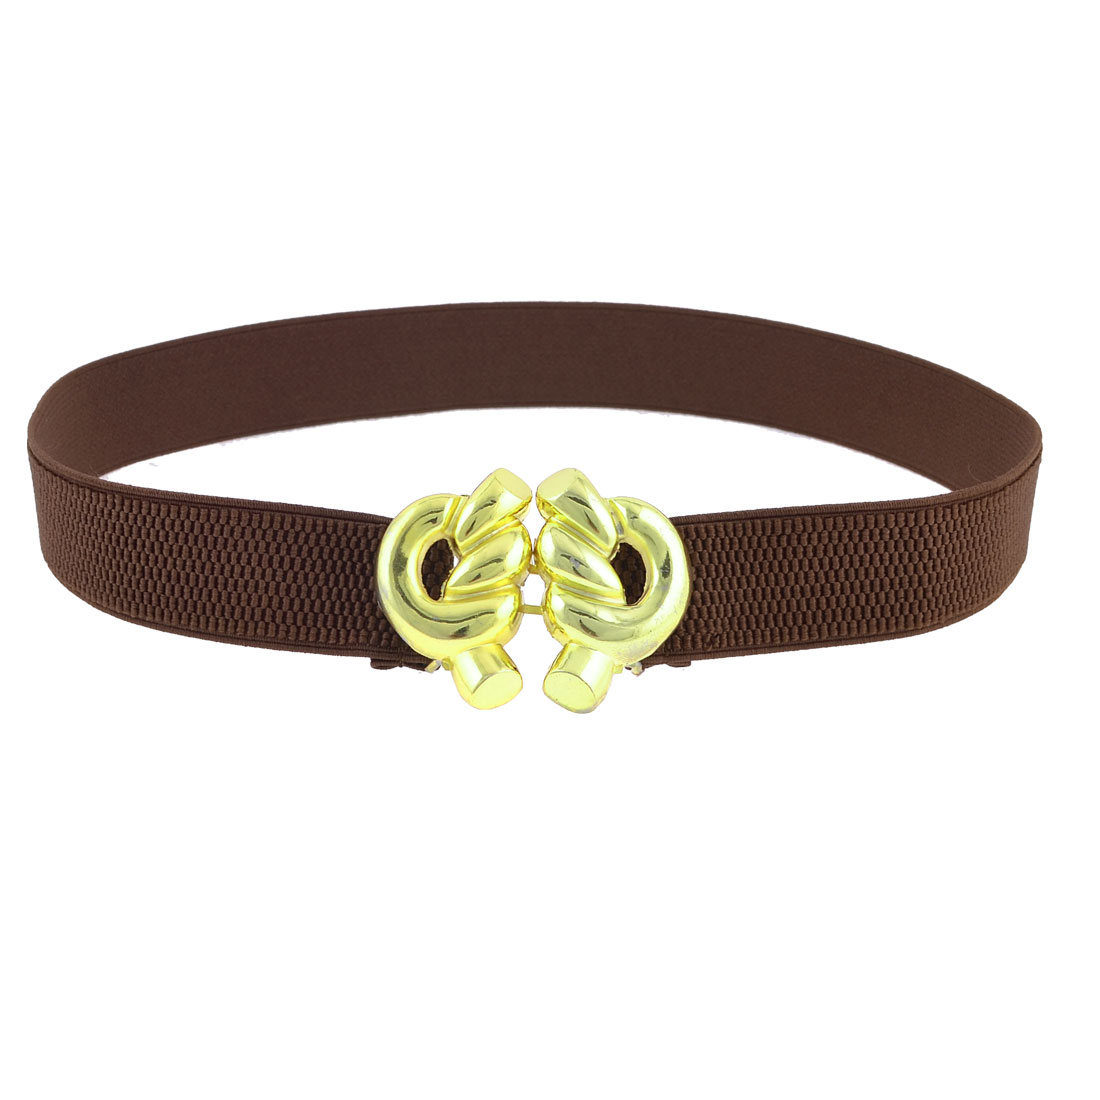 Brown Elastic Band Gold Tone Rope Knot Buckle Belt for Women